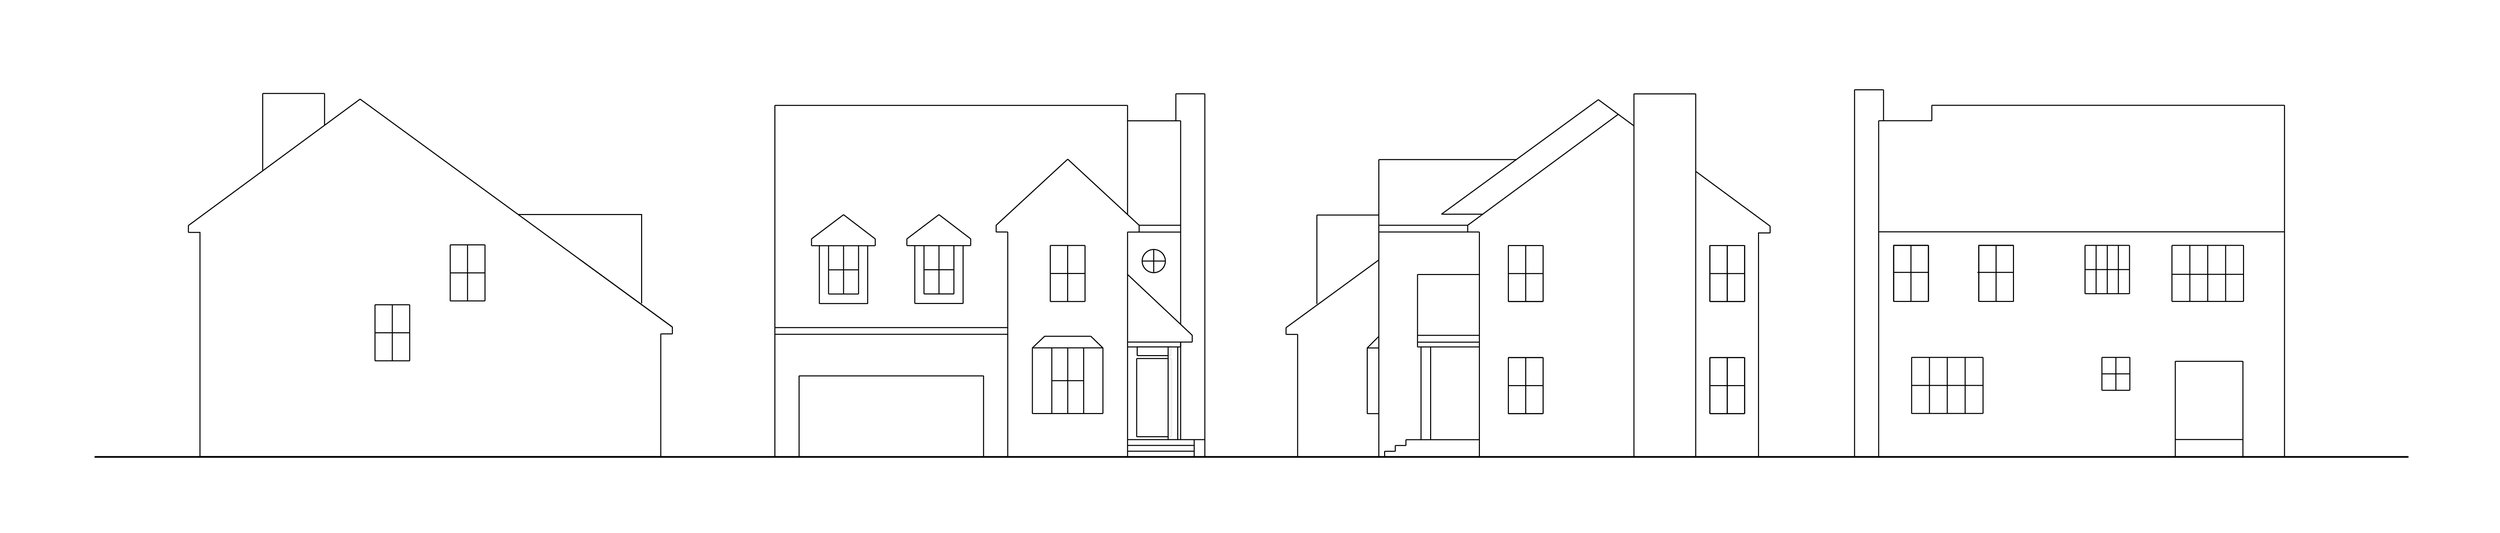 Elevation drawings of my home.